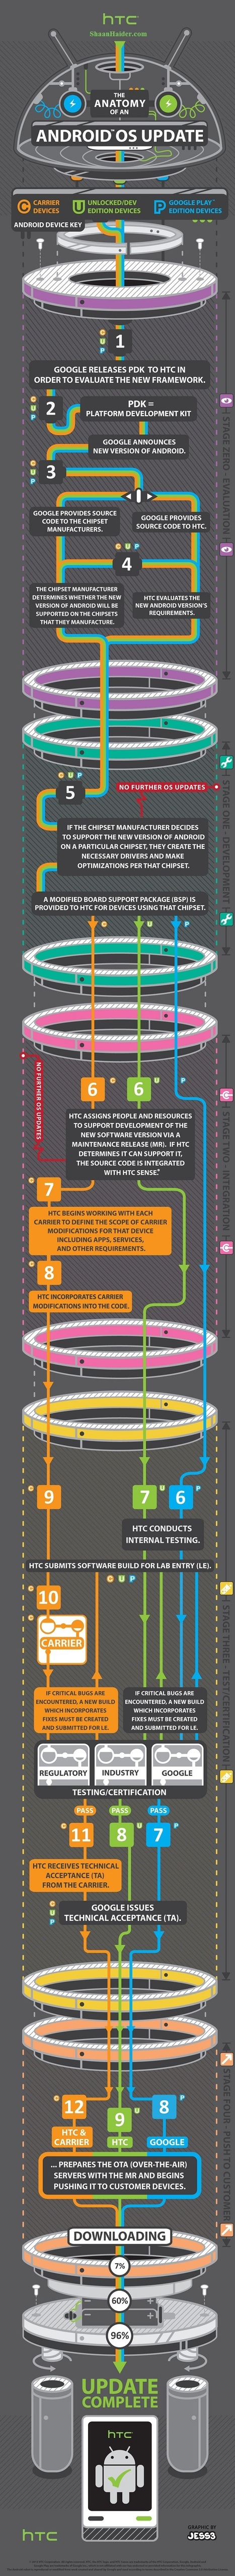 The Anatomy of Android OS Update (Infographic) | Geeky Stuffs | Science & Tech | Scoop.it